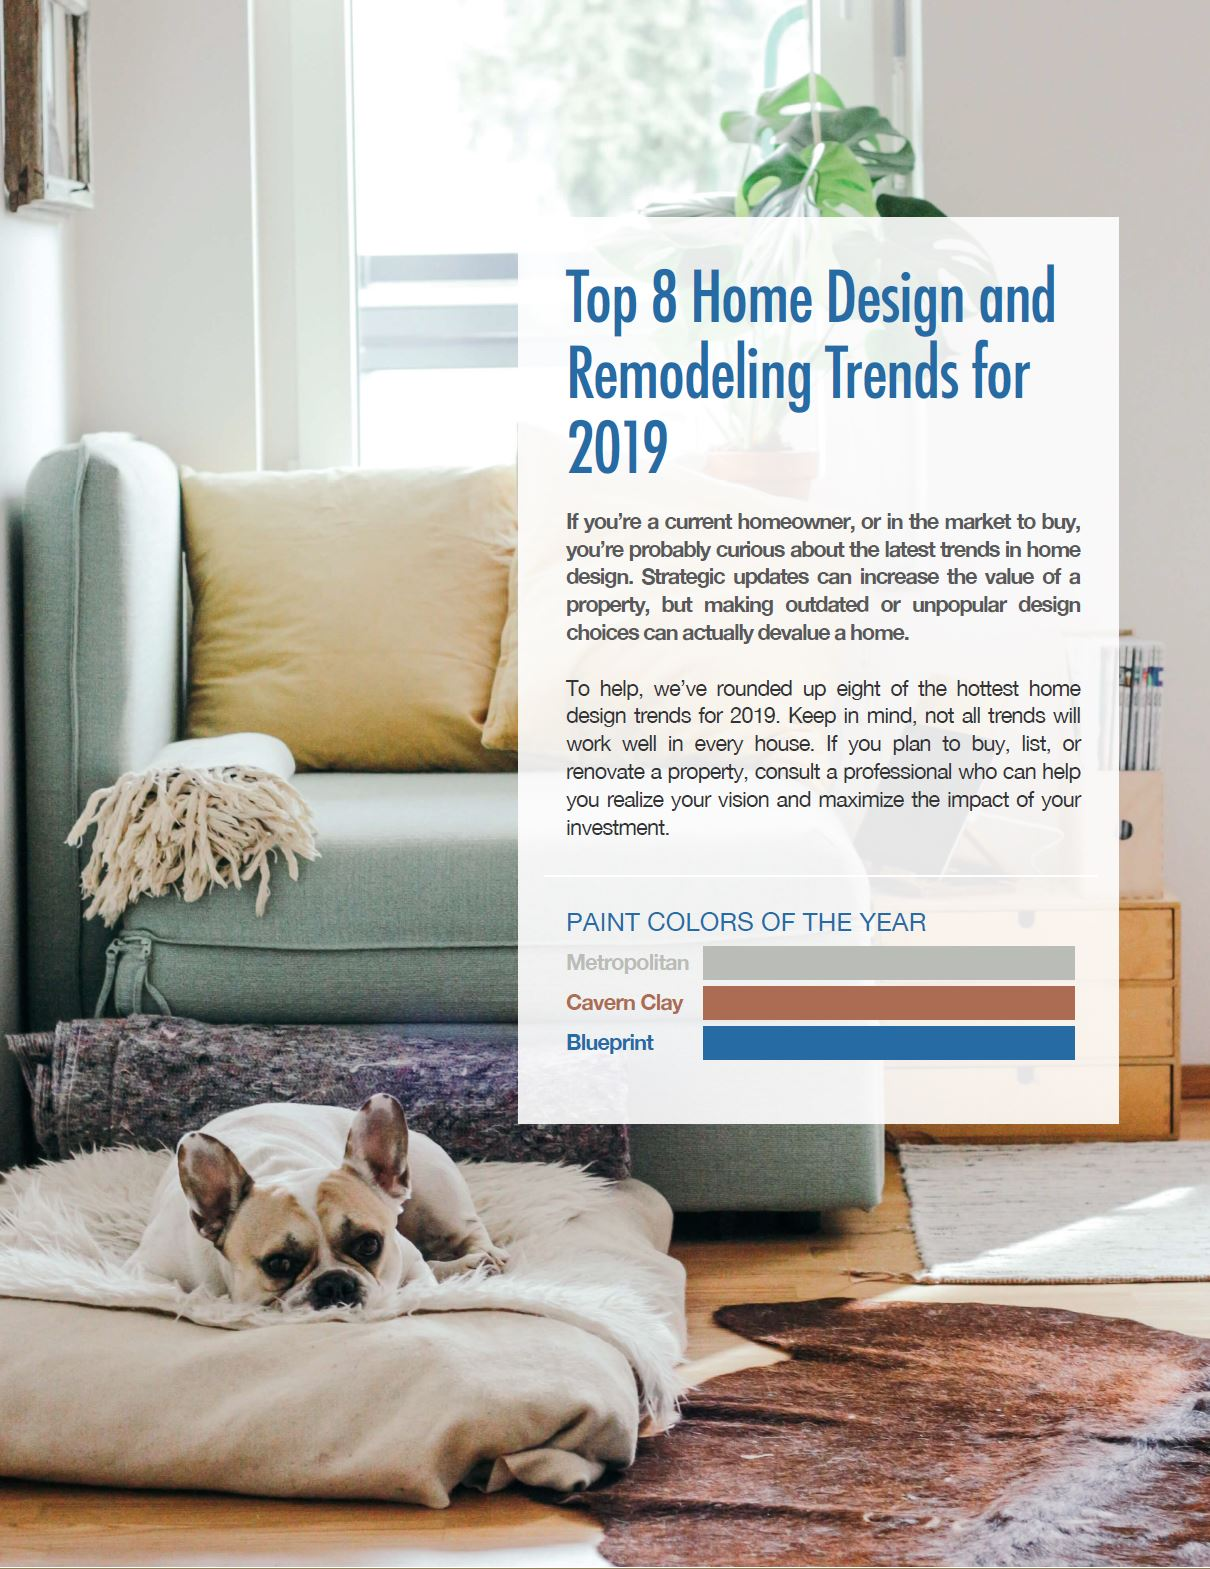 Home Design Remodeling Top 8 Home Design Remodeling Trends For 2019 Shannon May